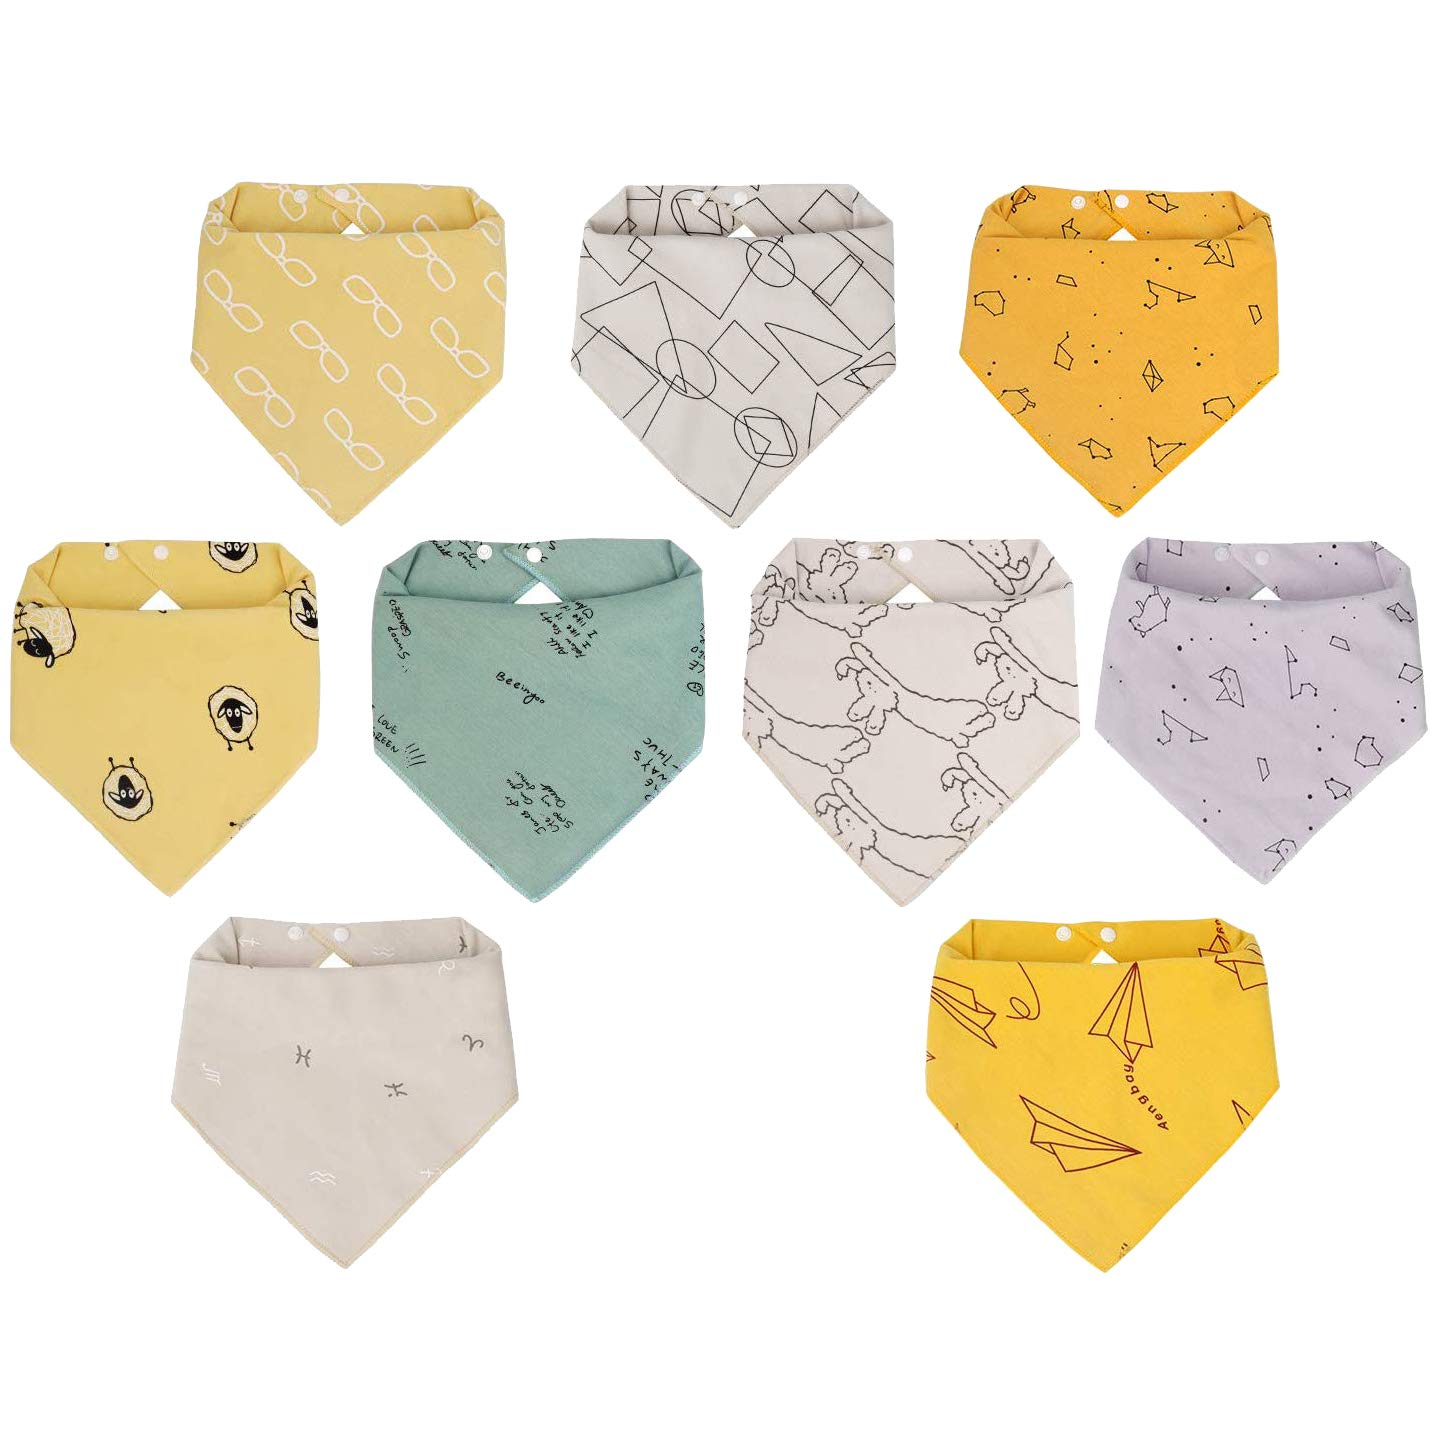 Viedouce Baby Bandana Drool Bibs 100% Organic Cotton Baby Burp Cloths with Adjustable Snaps, Neutral Set of 9: Baby